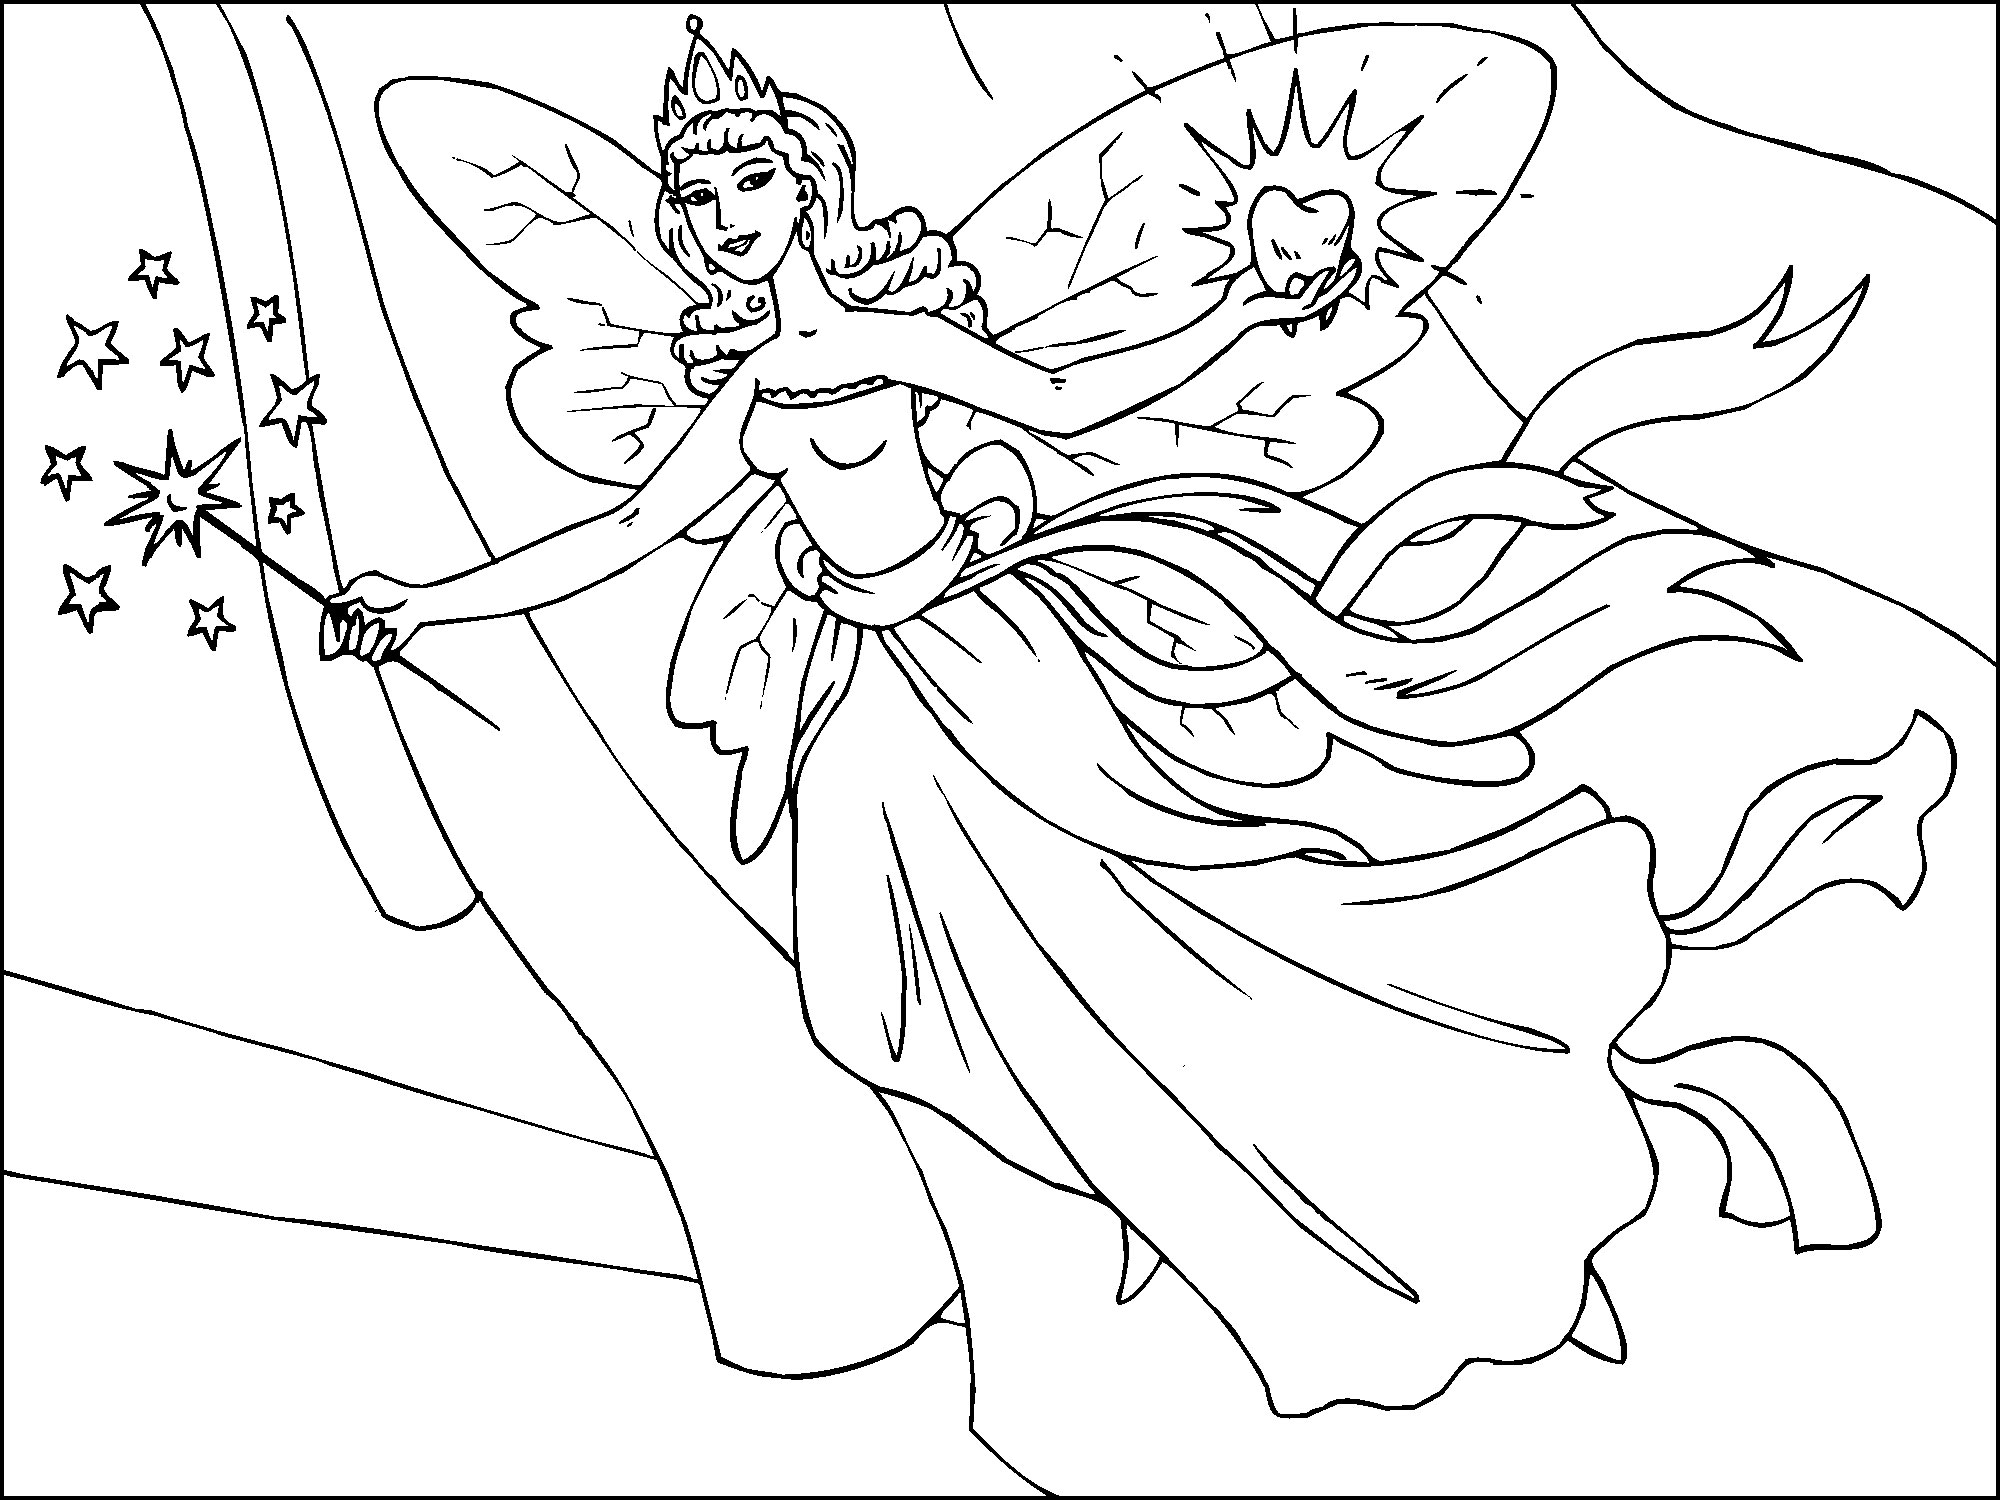 printable fairy coloring pages fairy coloring page free printable coloring pages printable fairy coloring pages